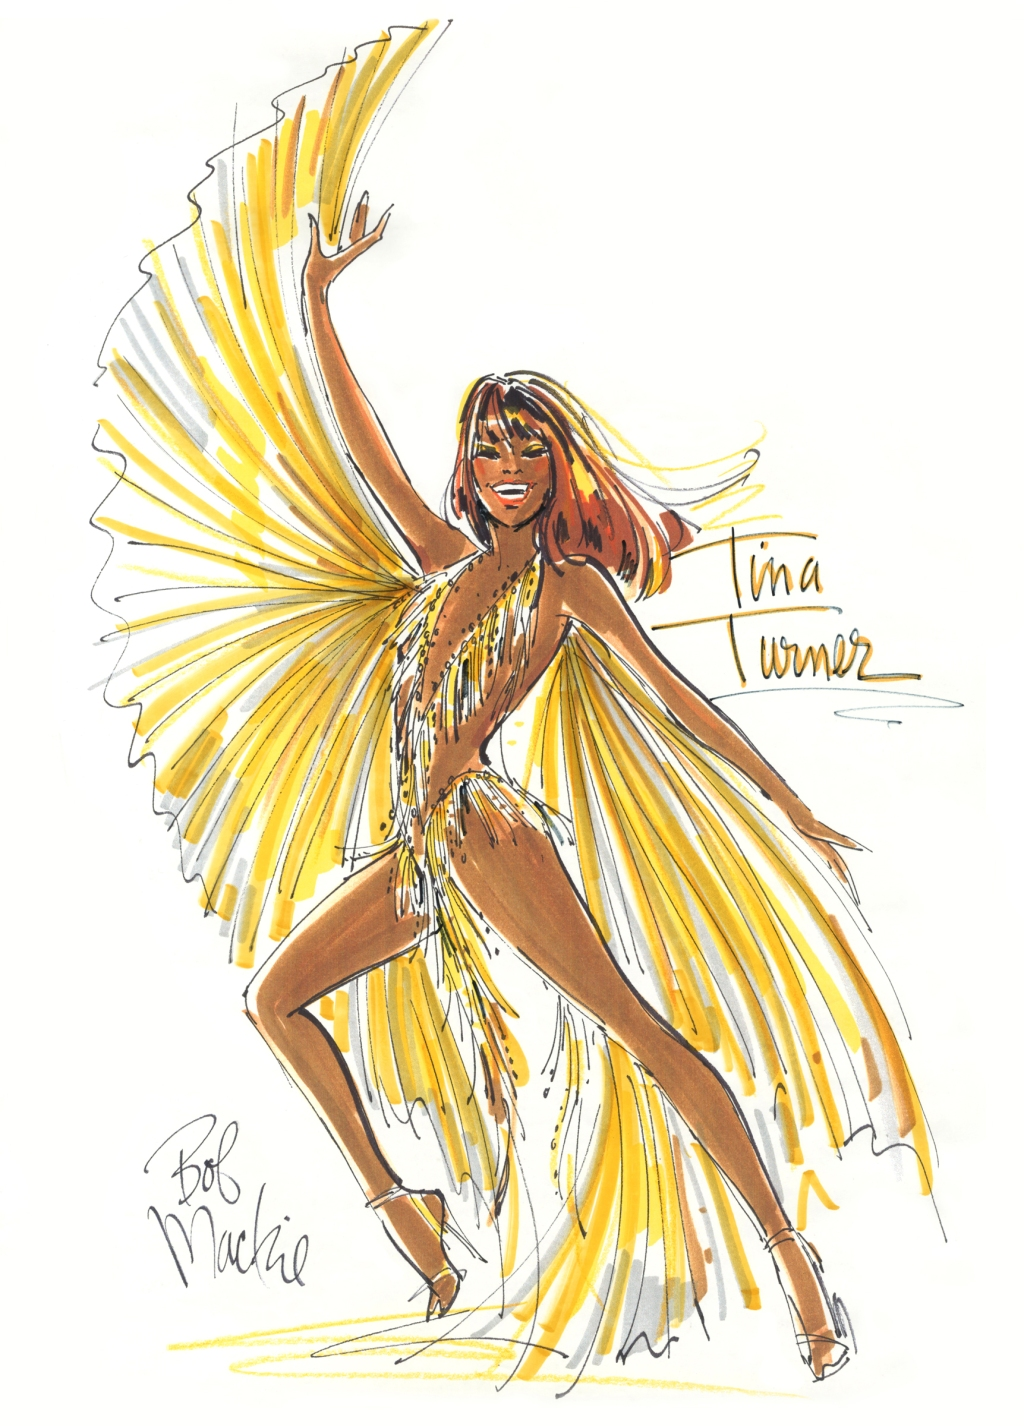 """""""That was in the late Seventies when she had split up with Ike. They were separated and she was doing a nightclub act before she started doing the huge stadium rock & roll things with Mick Jagger. This was very Tina. She had so much fun with those wings and all that fringe. The woman was just amazing and still is of course. """"It was interesting [to see Tina the musical] because I had lived through some of those events with her."""""""